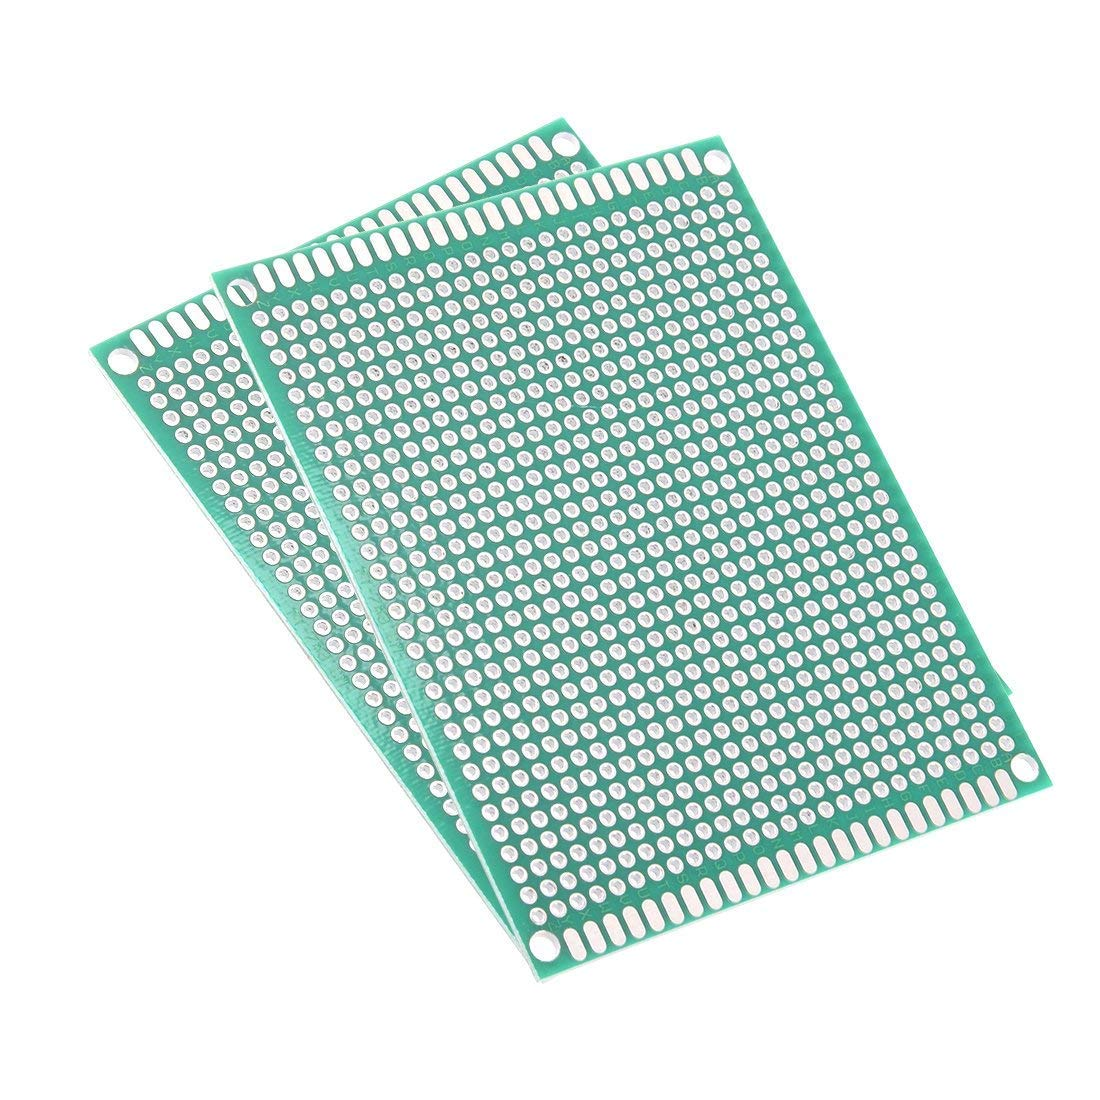 AUXcell 7x9cm Double Sided Universal Printed Circuit Board for DIY Soldering 10pcs